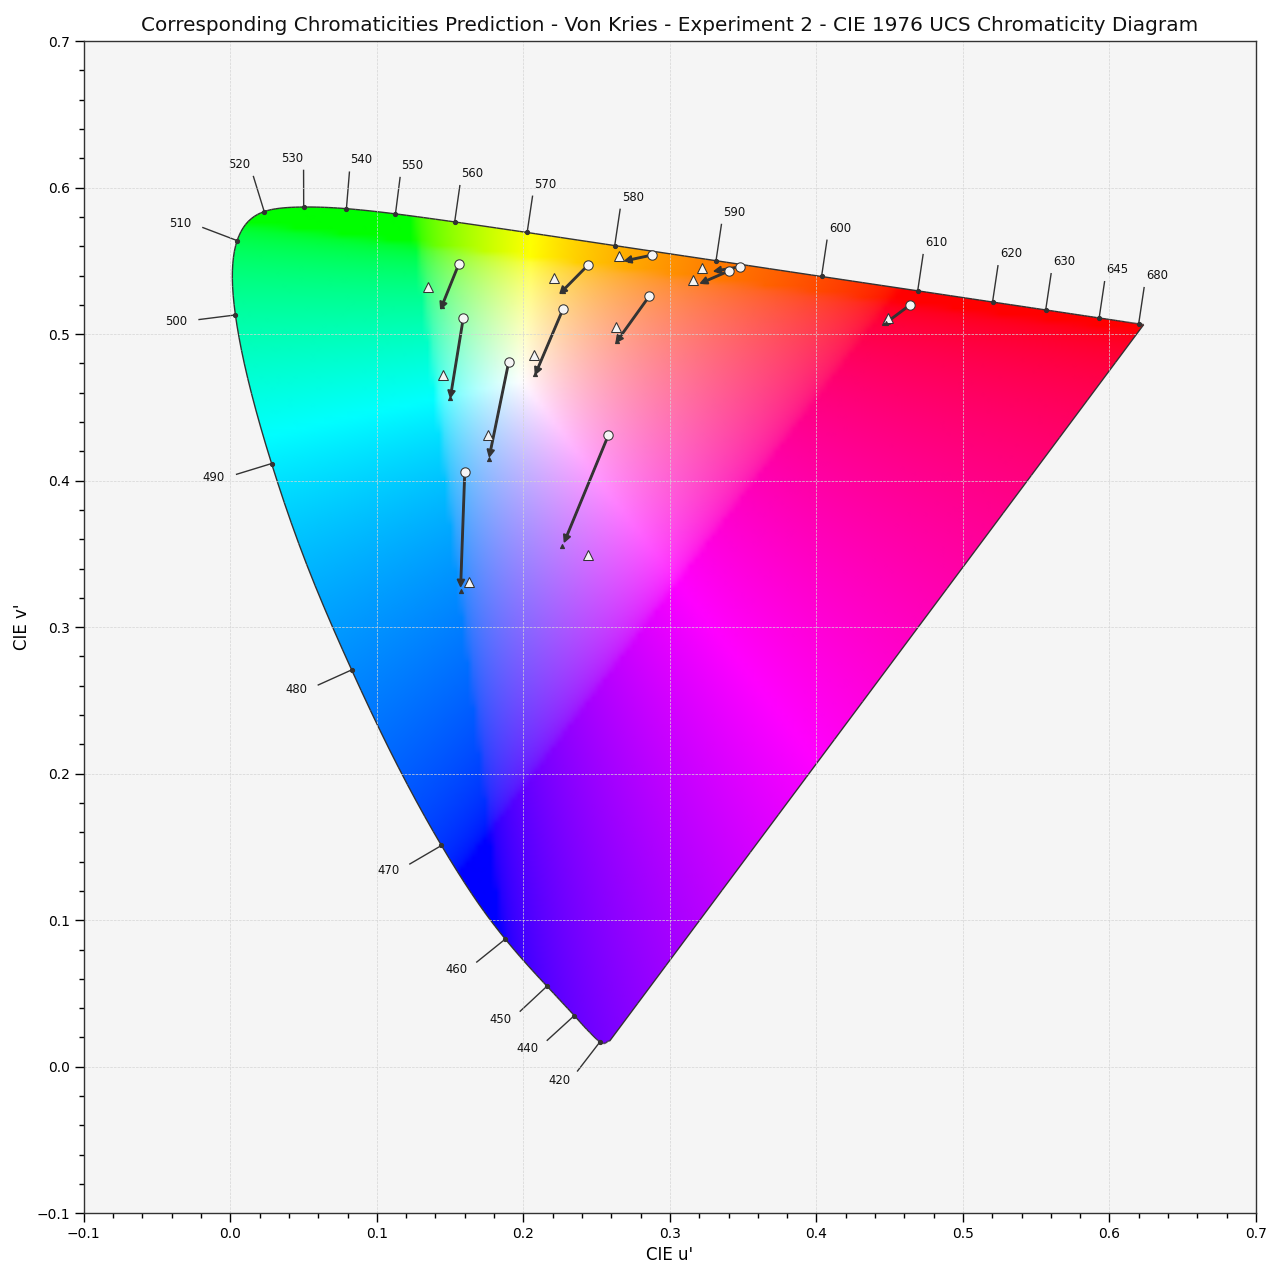 https://colour.readthedocs.io/en/develop/_images/Examples_Plotting_Chromaticities_Prediction.png